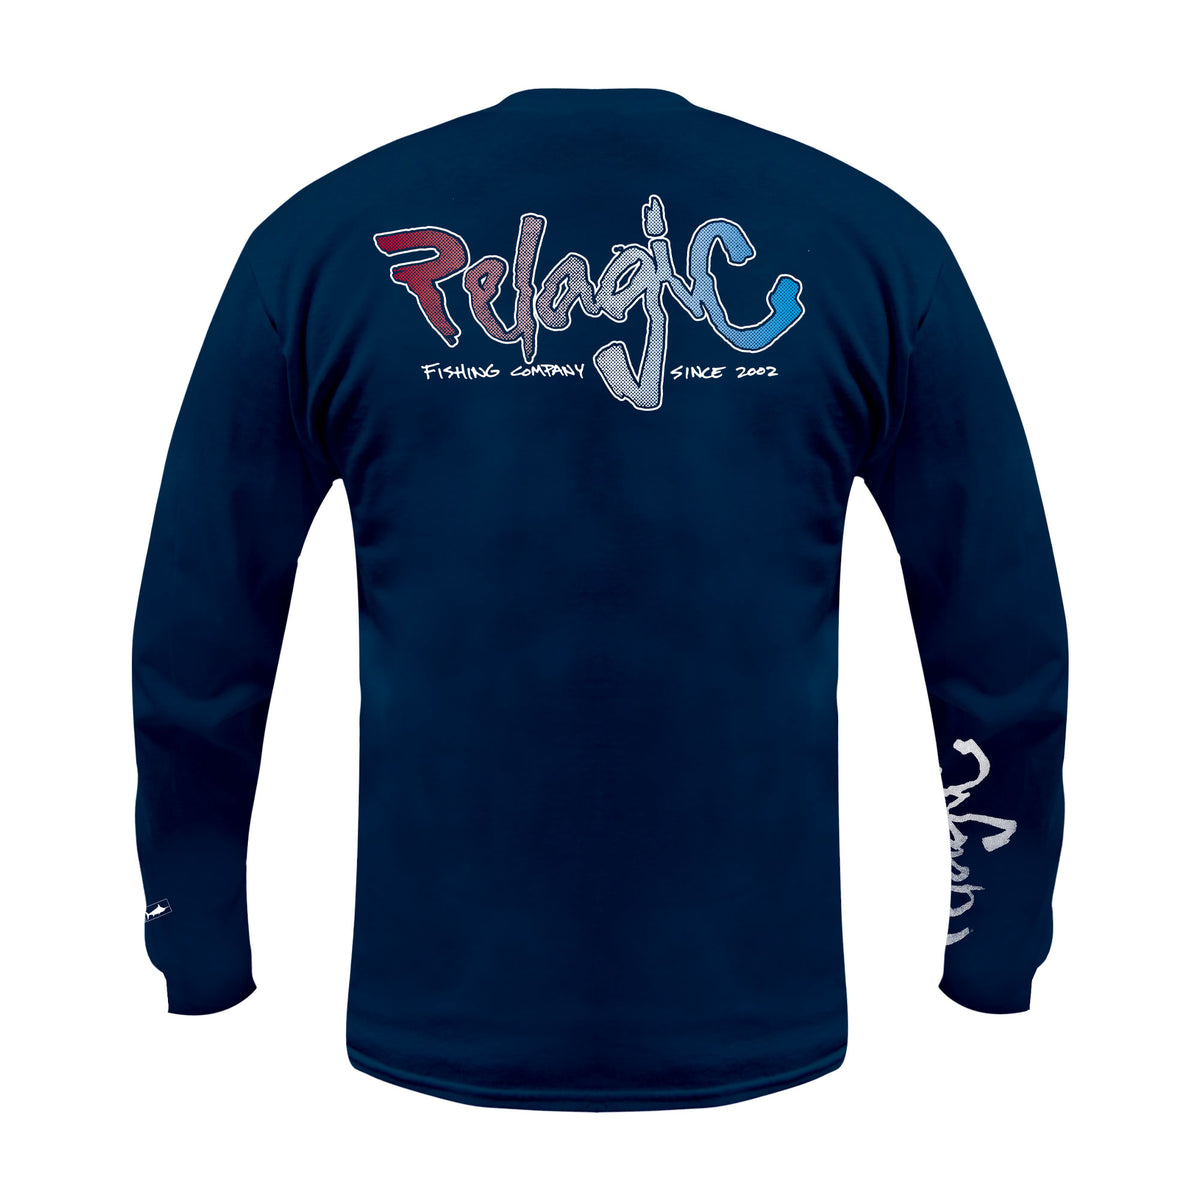 Scribble Long Sleeve Fishing T-Shirt Big Image - 1